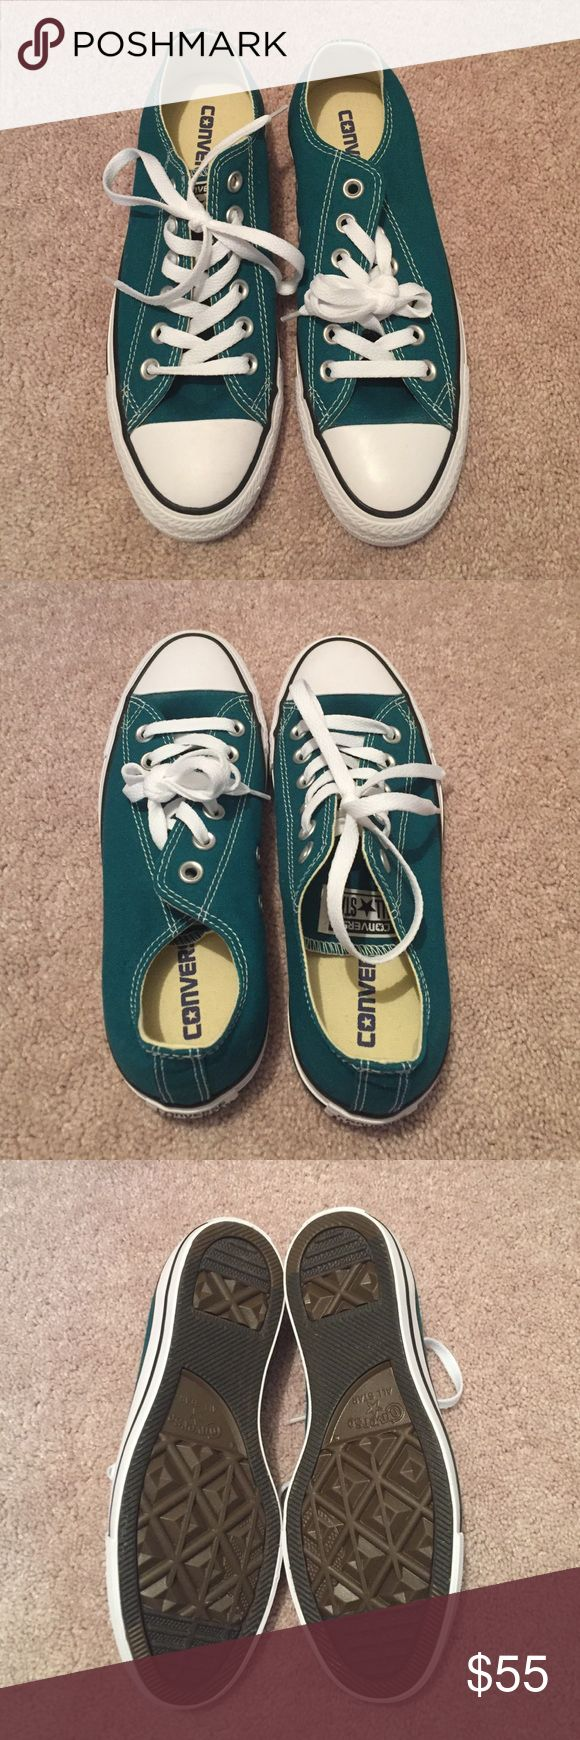 NWOT women's size 7 converse New without tags women's size 7 converse shoes. Never worn. Color is a very pretty teal Converse Shoes